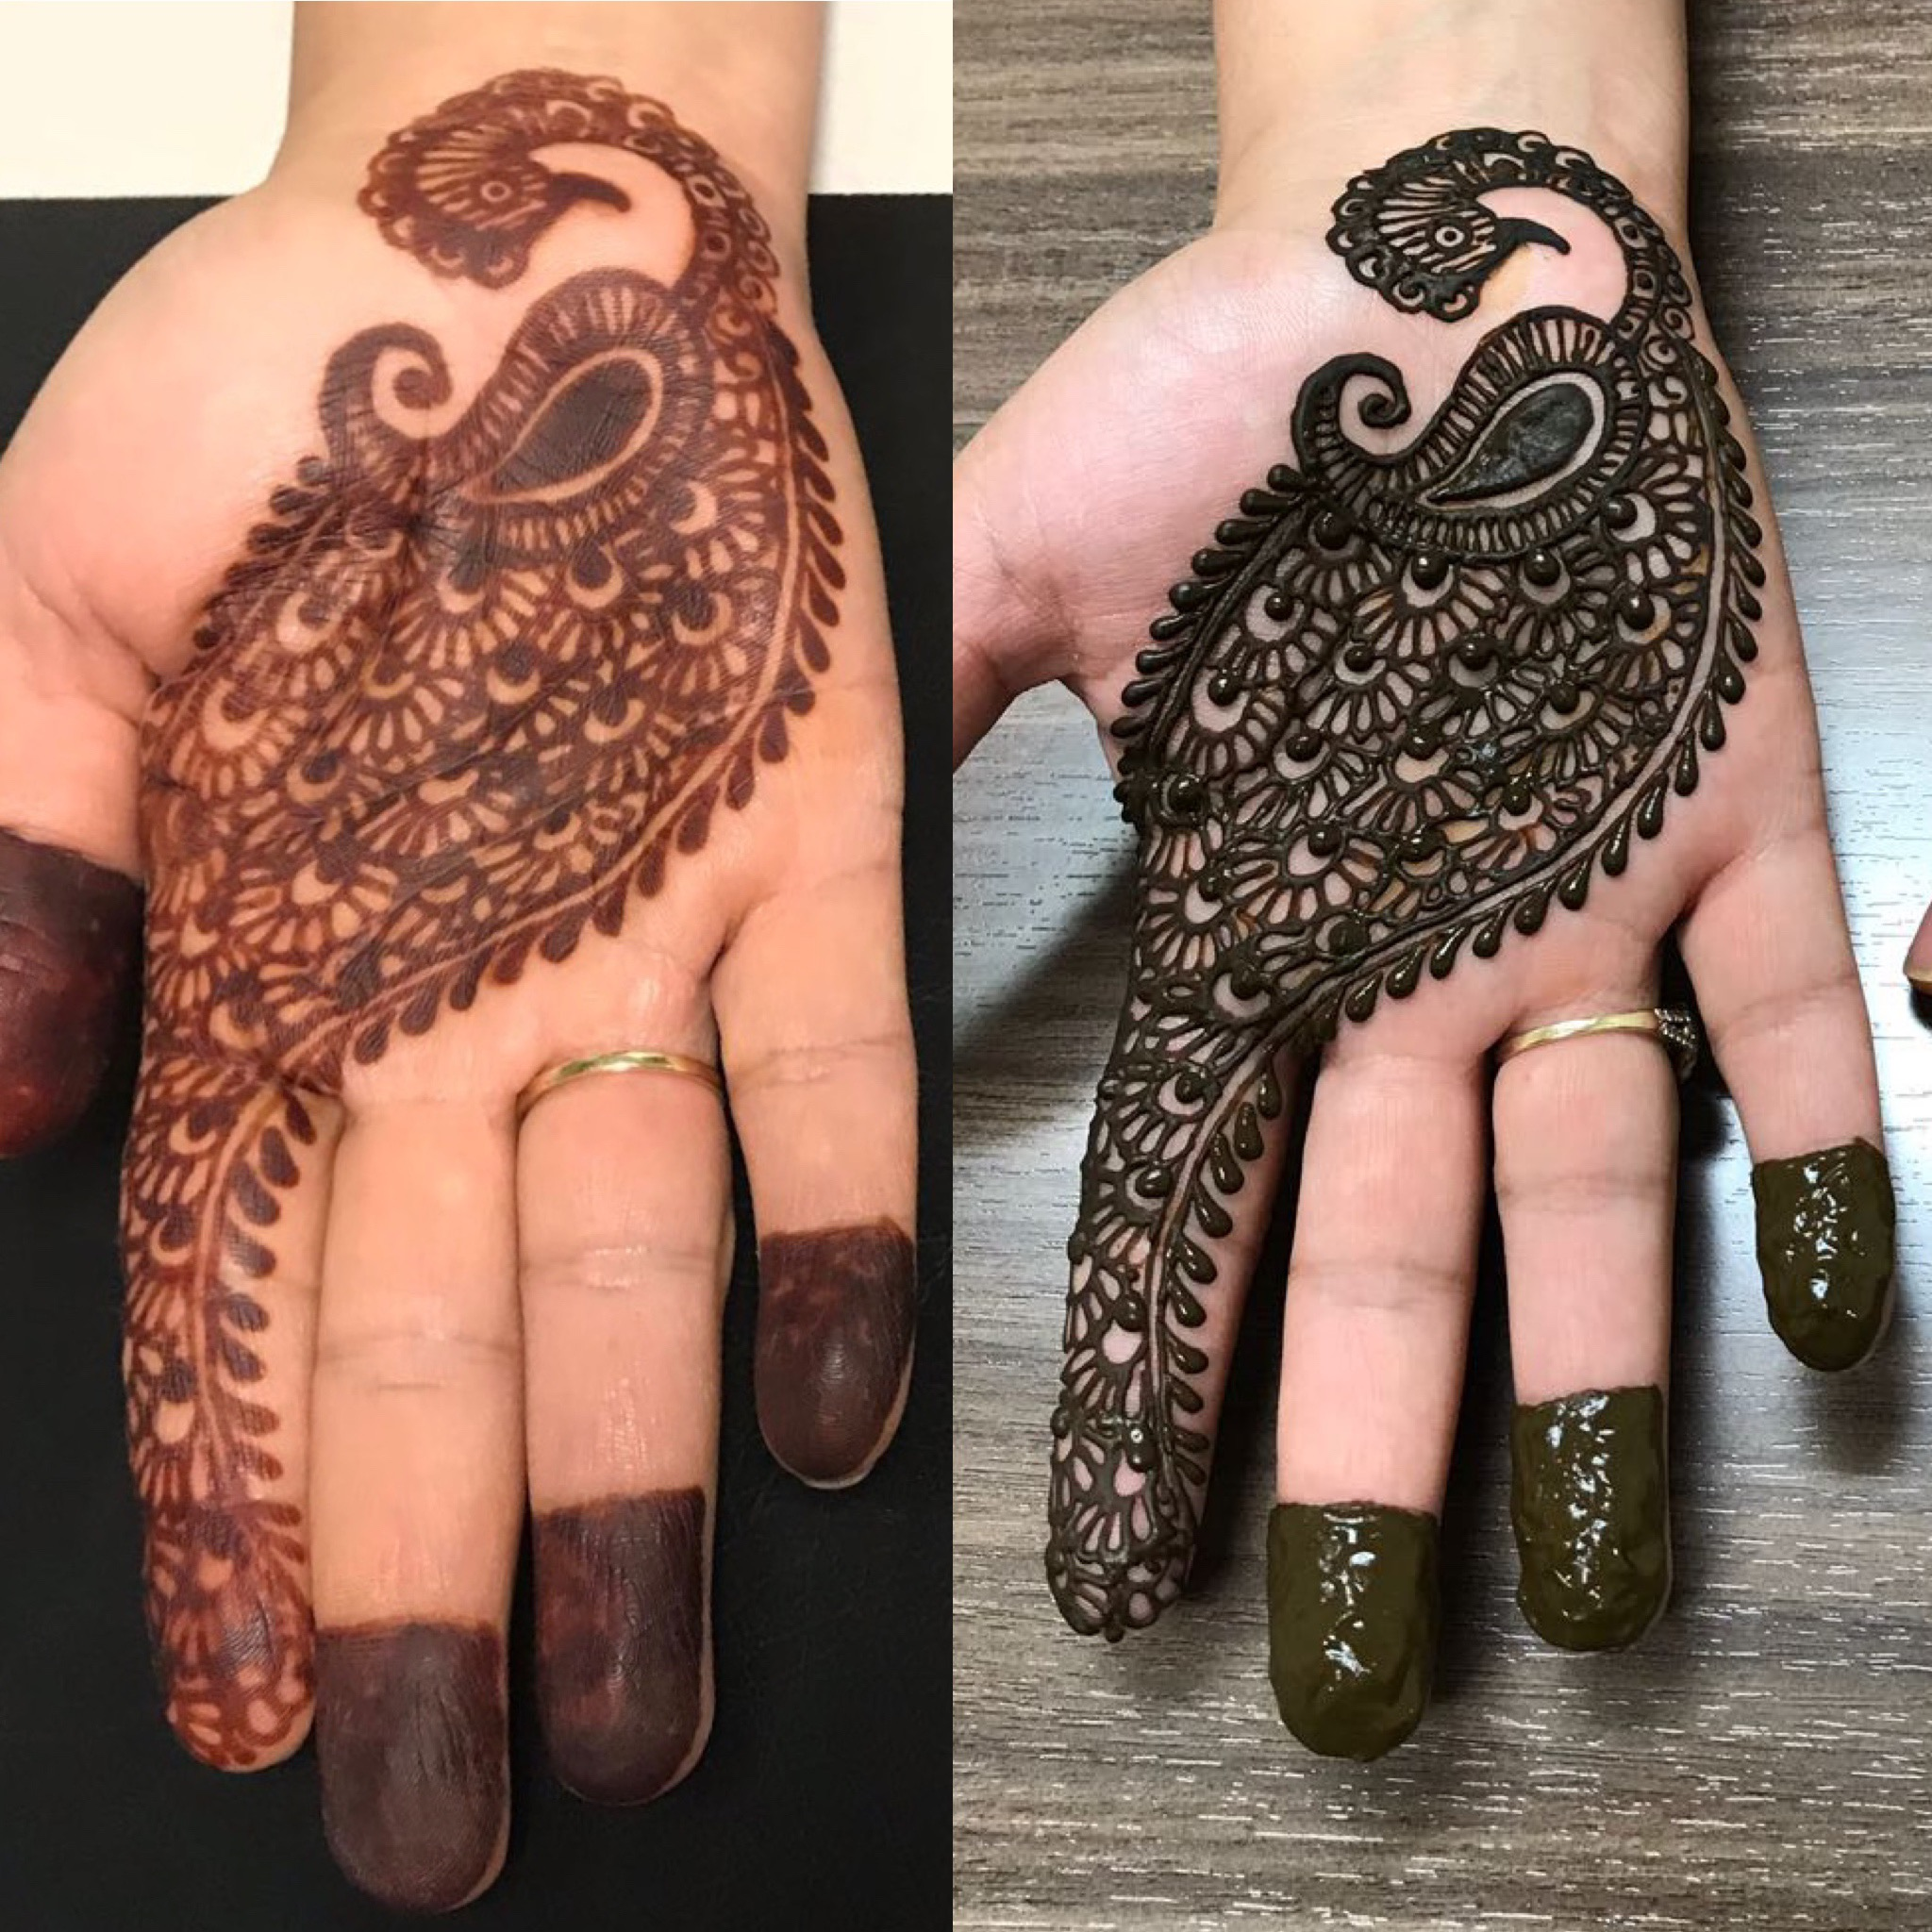 - Madiha is dedicated and profusely creative! Creativity is in her soul and and I greatly appreciate all the excellent Henna Design she has done for me. Her quality of work is extensive and she keeps challenging herself to do more difficult and intricate designs! All the best to you Madiha! -Rachna